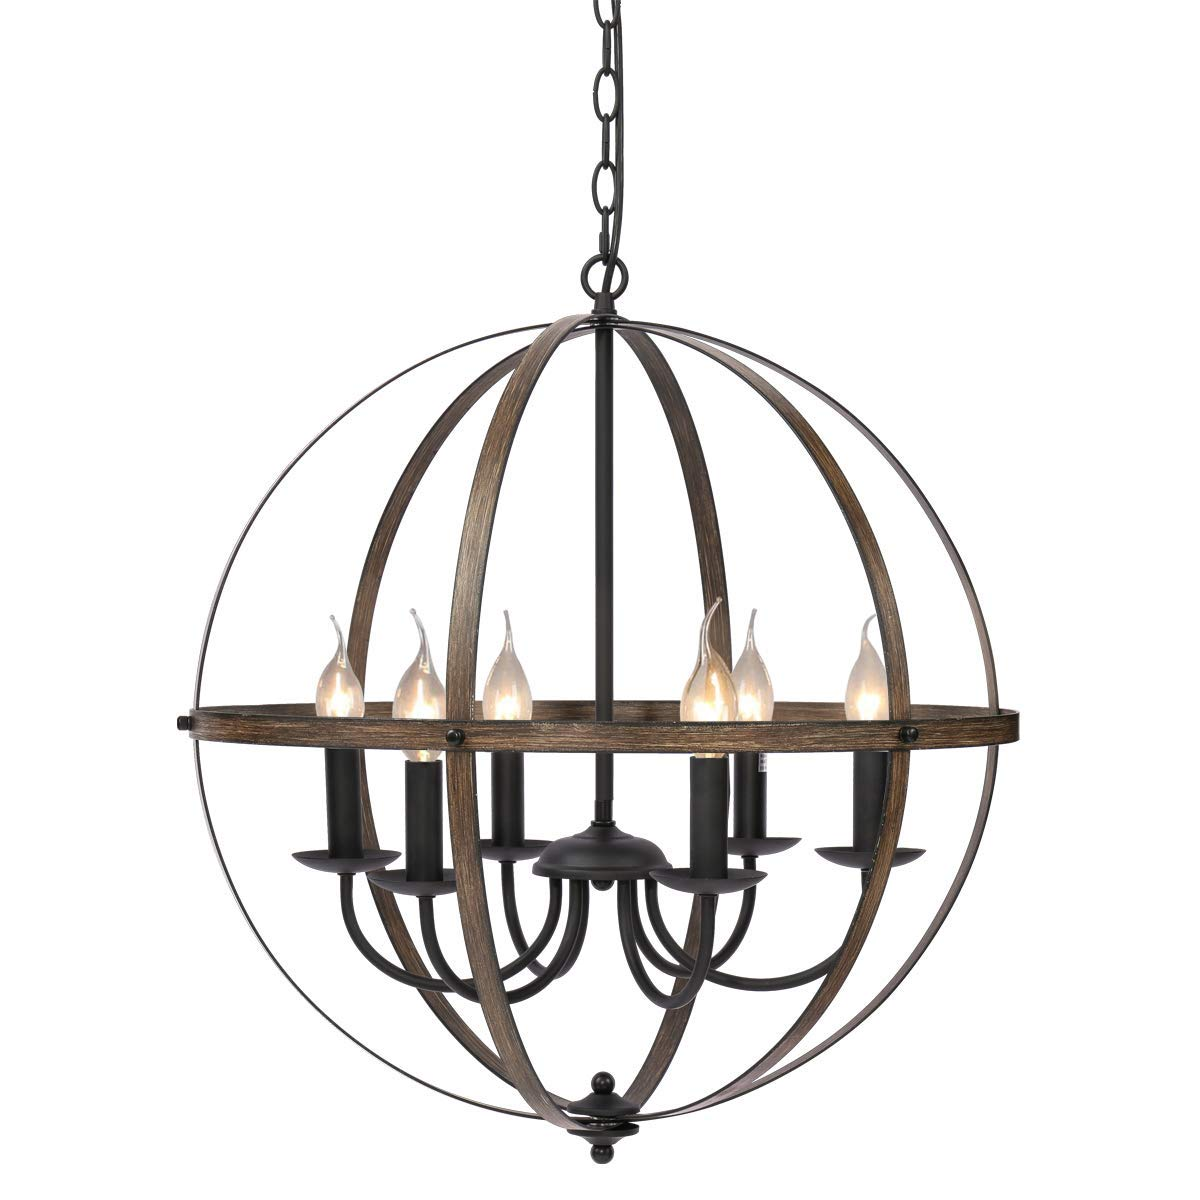 KingSo 6 Light Chandelier 23.62'' Rustic Metal Pendant Light Oil Rubbed Bronze Finish Wood Texture Industrial Ceiling Hanging Light Fixture for Indoor Kitchen Island Dining Living Room Farmhouse